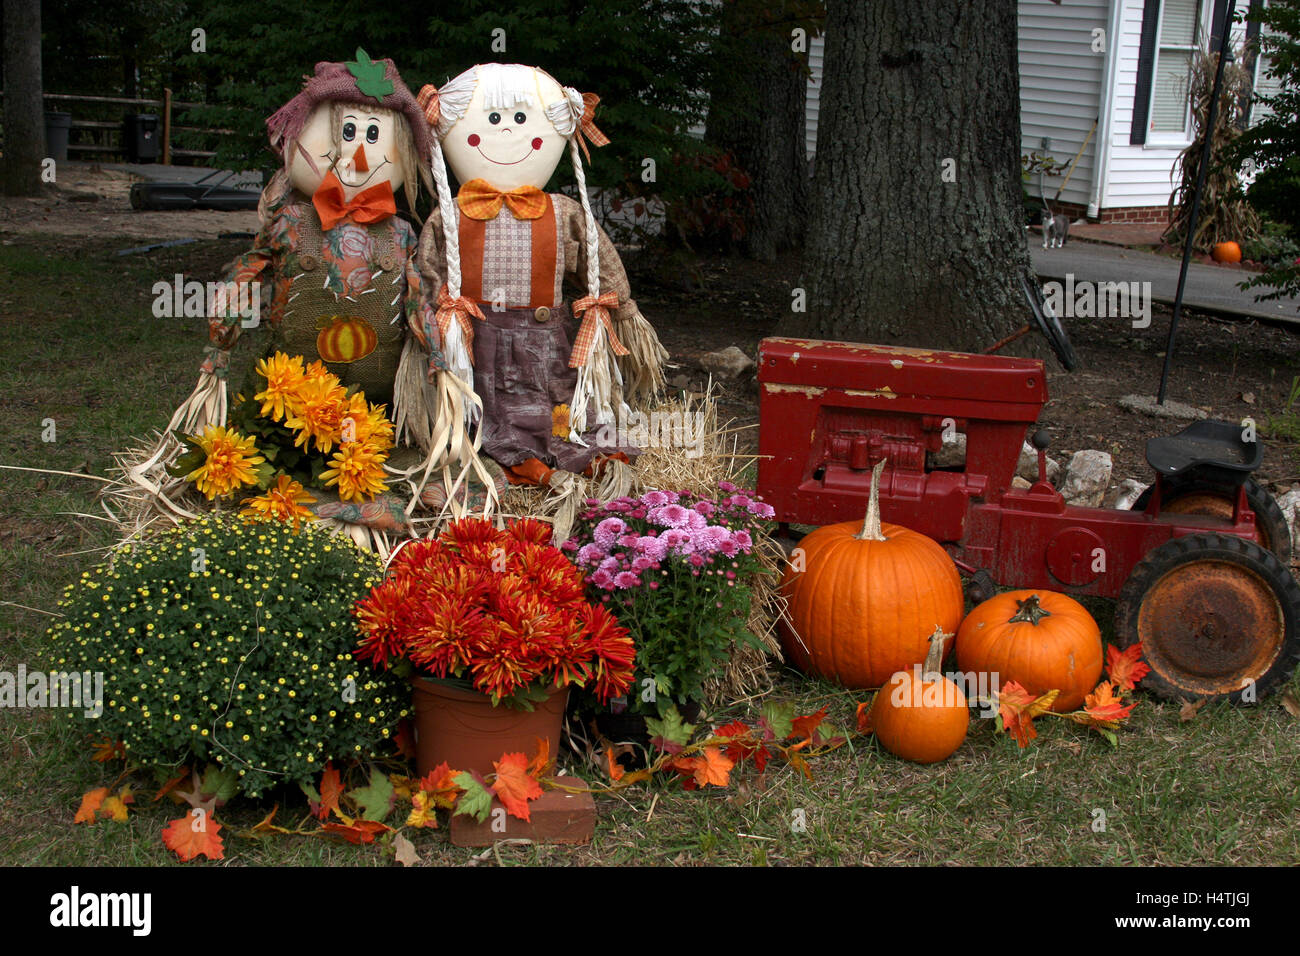 Outdoor Fall Decoration With Scarecrows Mums Tractor And Pumpkins